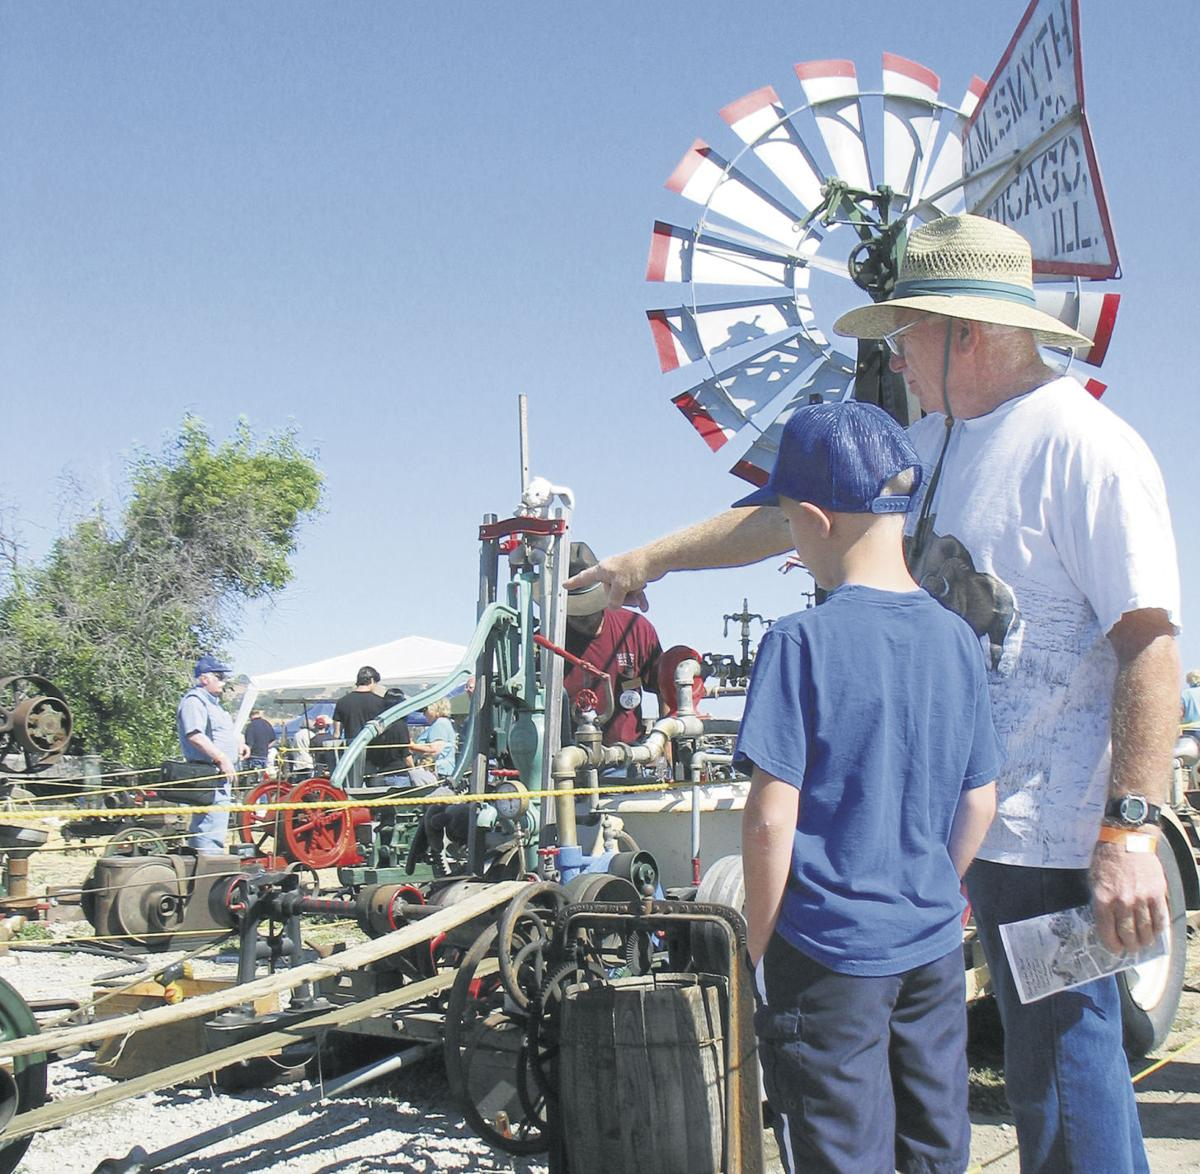 Steam powers imagination at old-time machinery show